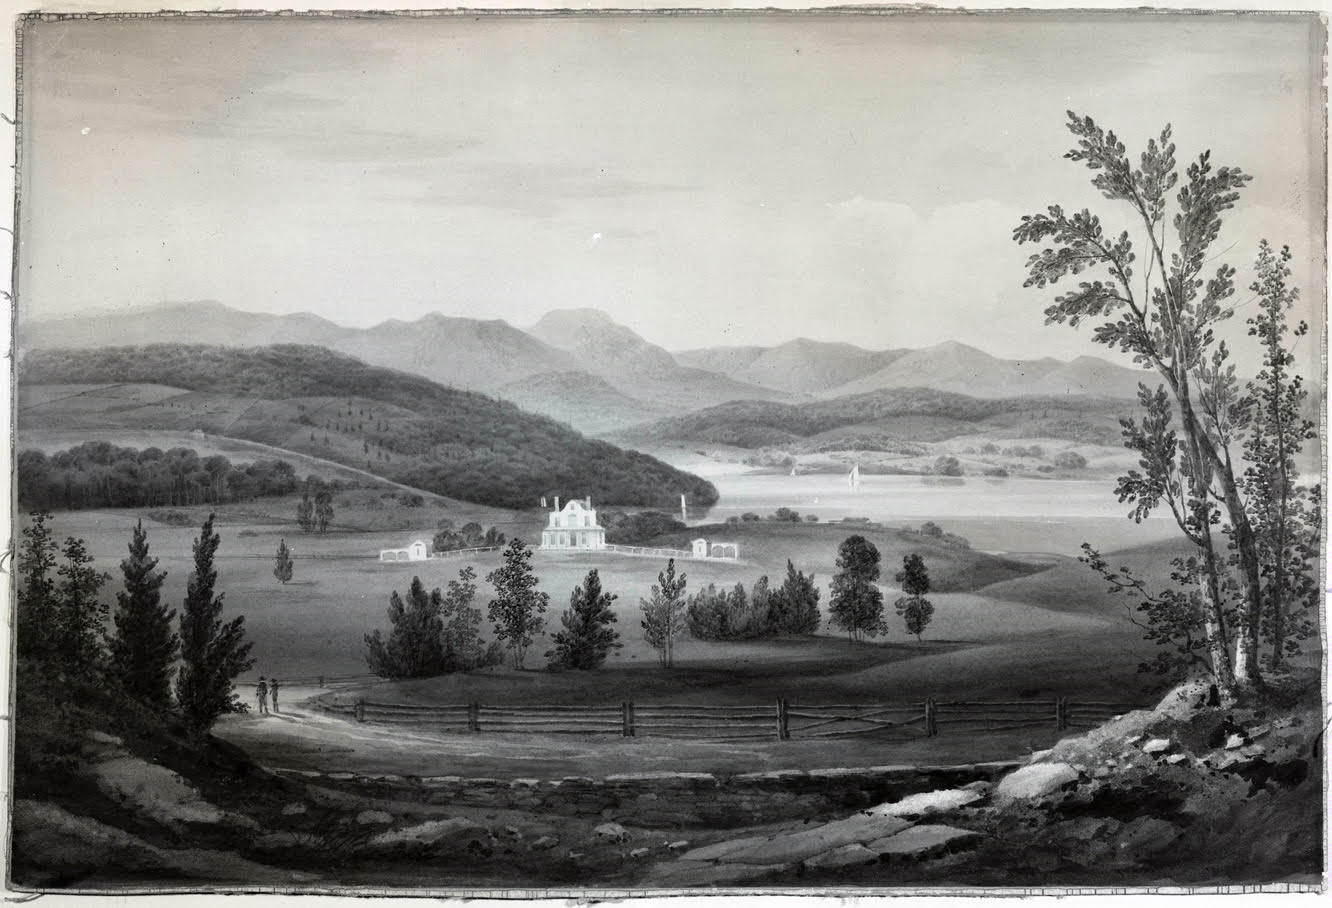 The house as built in 1811-1812 with open farmland to the Hudson River. William Guy Wall watercolor. Unpublished study for the Hudson River Portfolio, ca. 1819. Courtesy: New-York Historical Society.